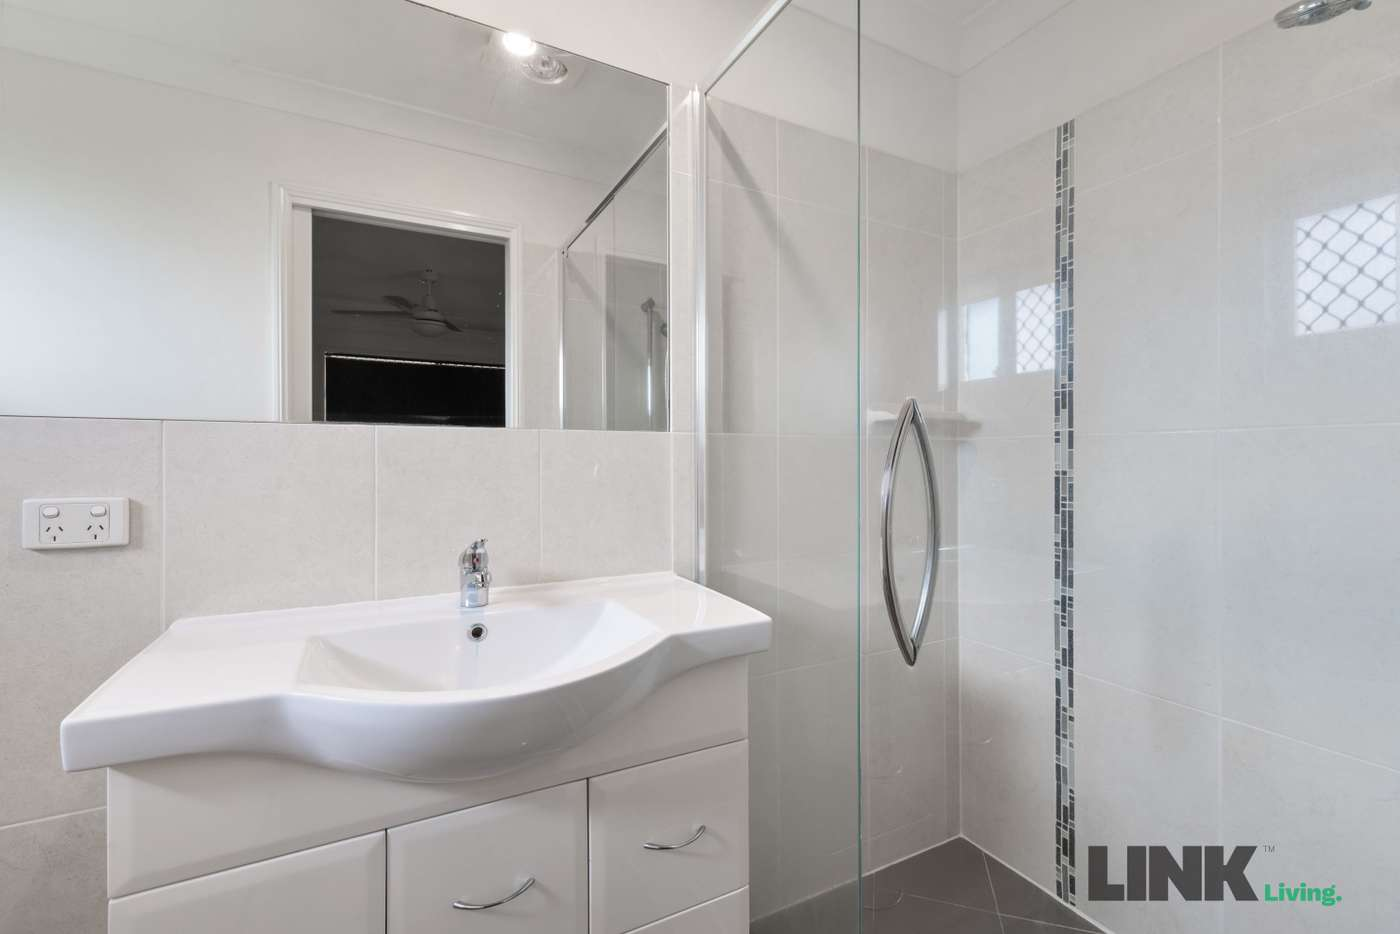 Sixth view of Homely house listing, 13 BARCREST COURT, Crestmead QLD 4132